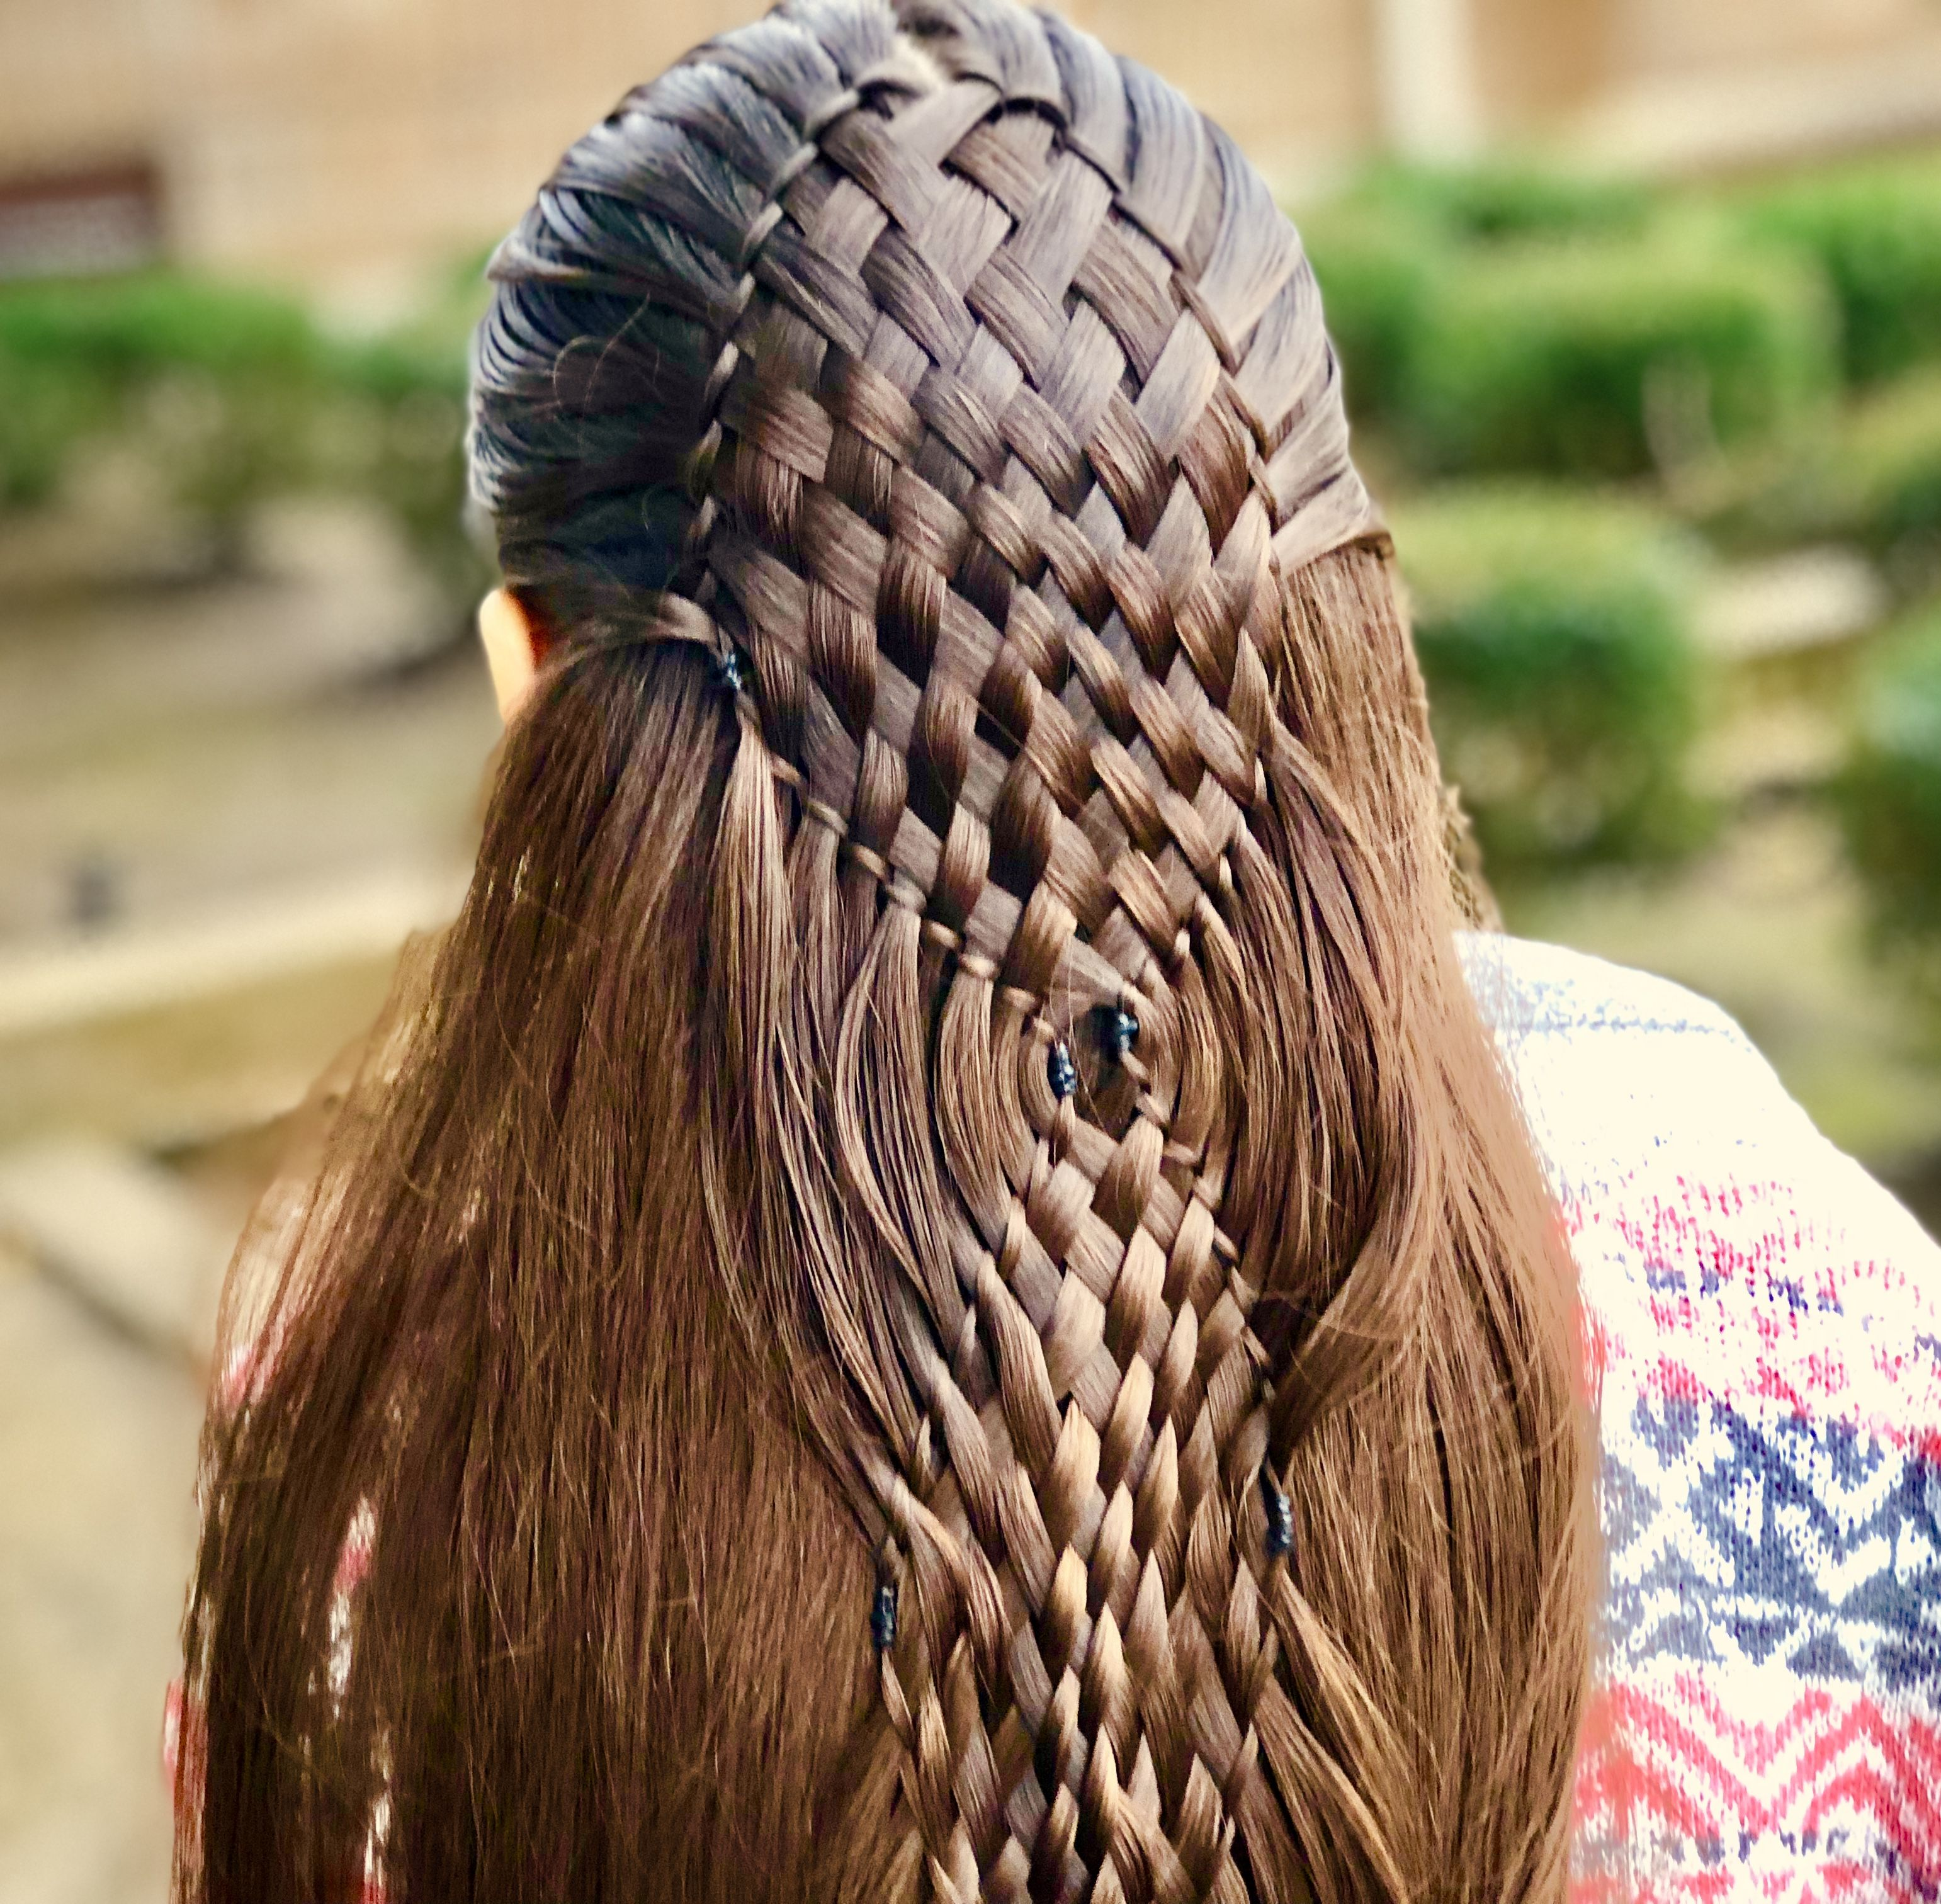 Church hairstyle for today. I saw this on Pinterest and wanted to